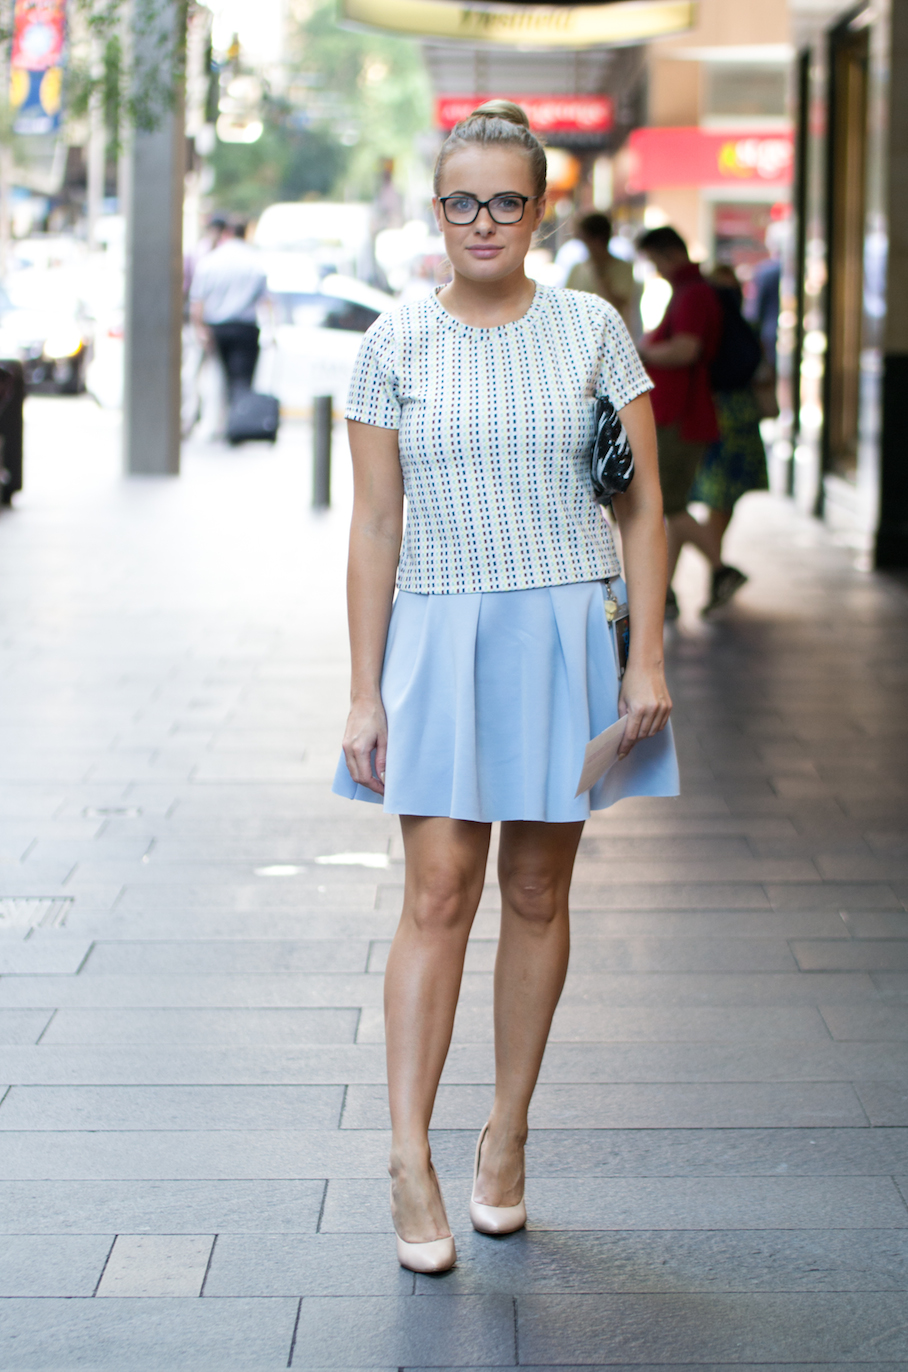 NSW: Ksenia Cunico, Personal Assistant, Sydney CBD. Photo: Alice Sciberras.